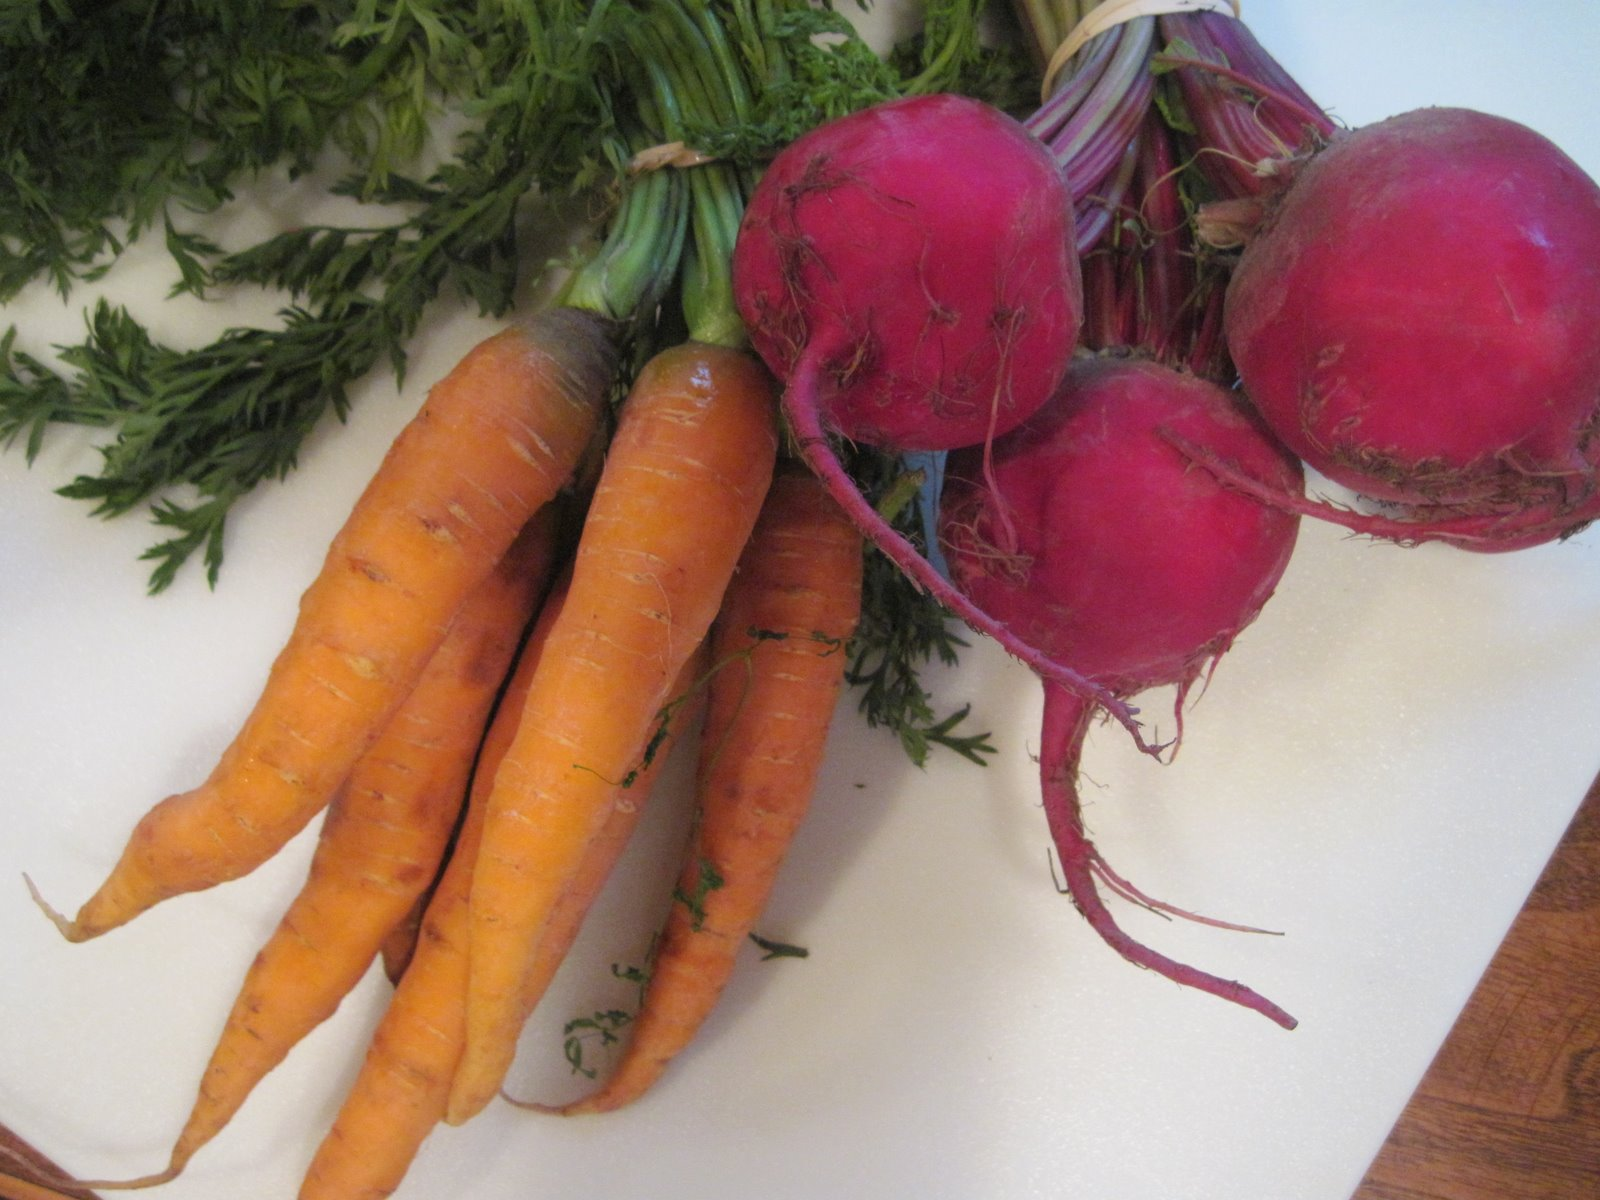 Baked Beets and Carrots